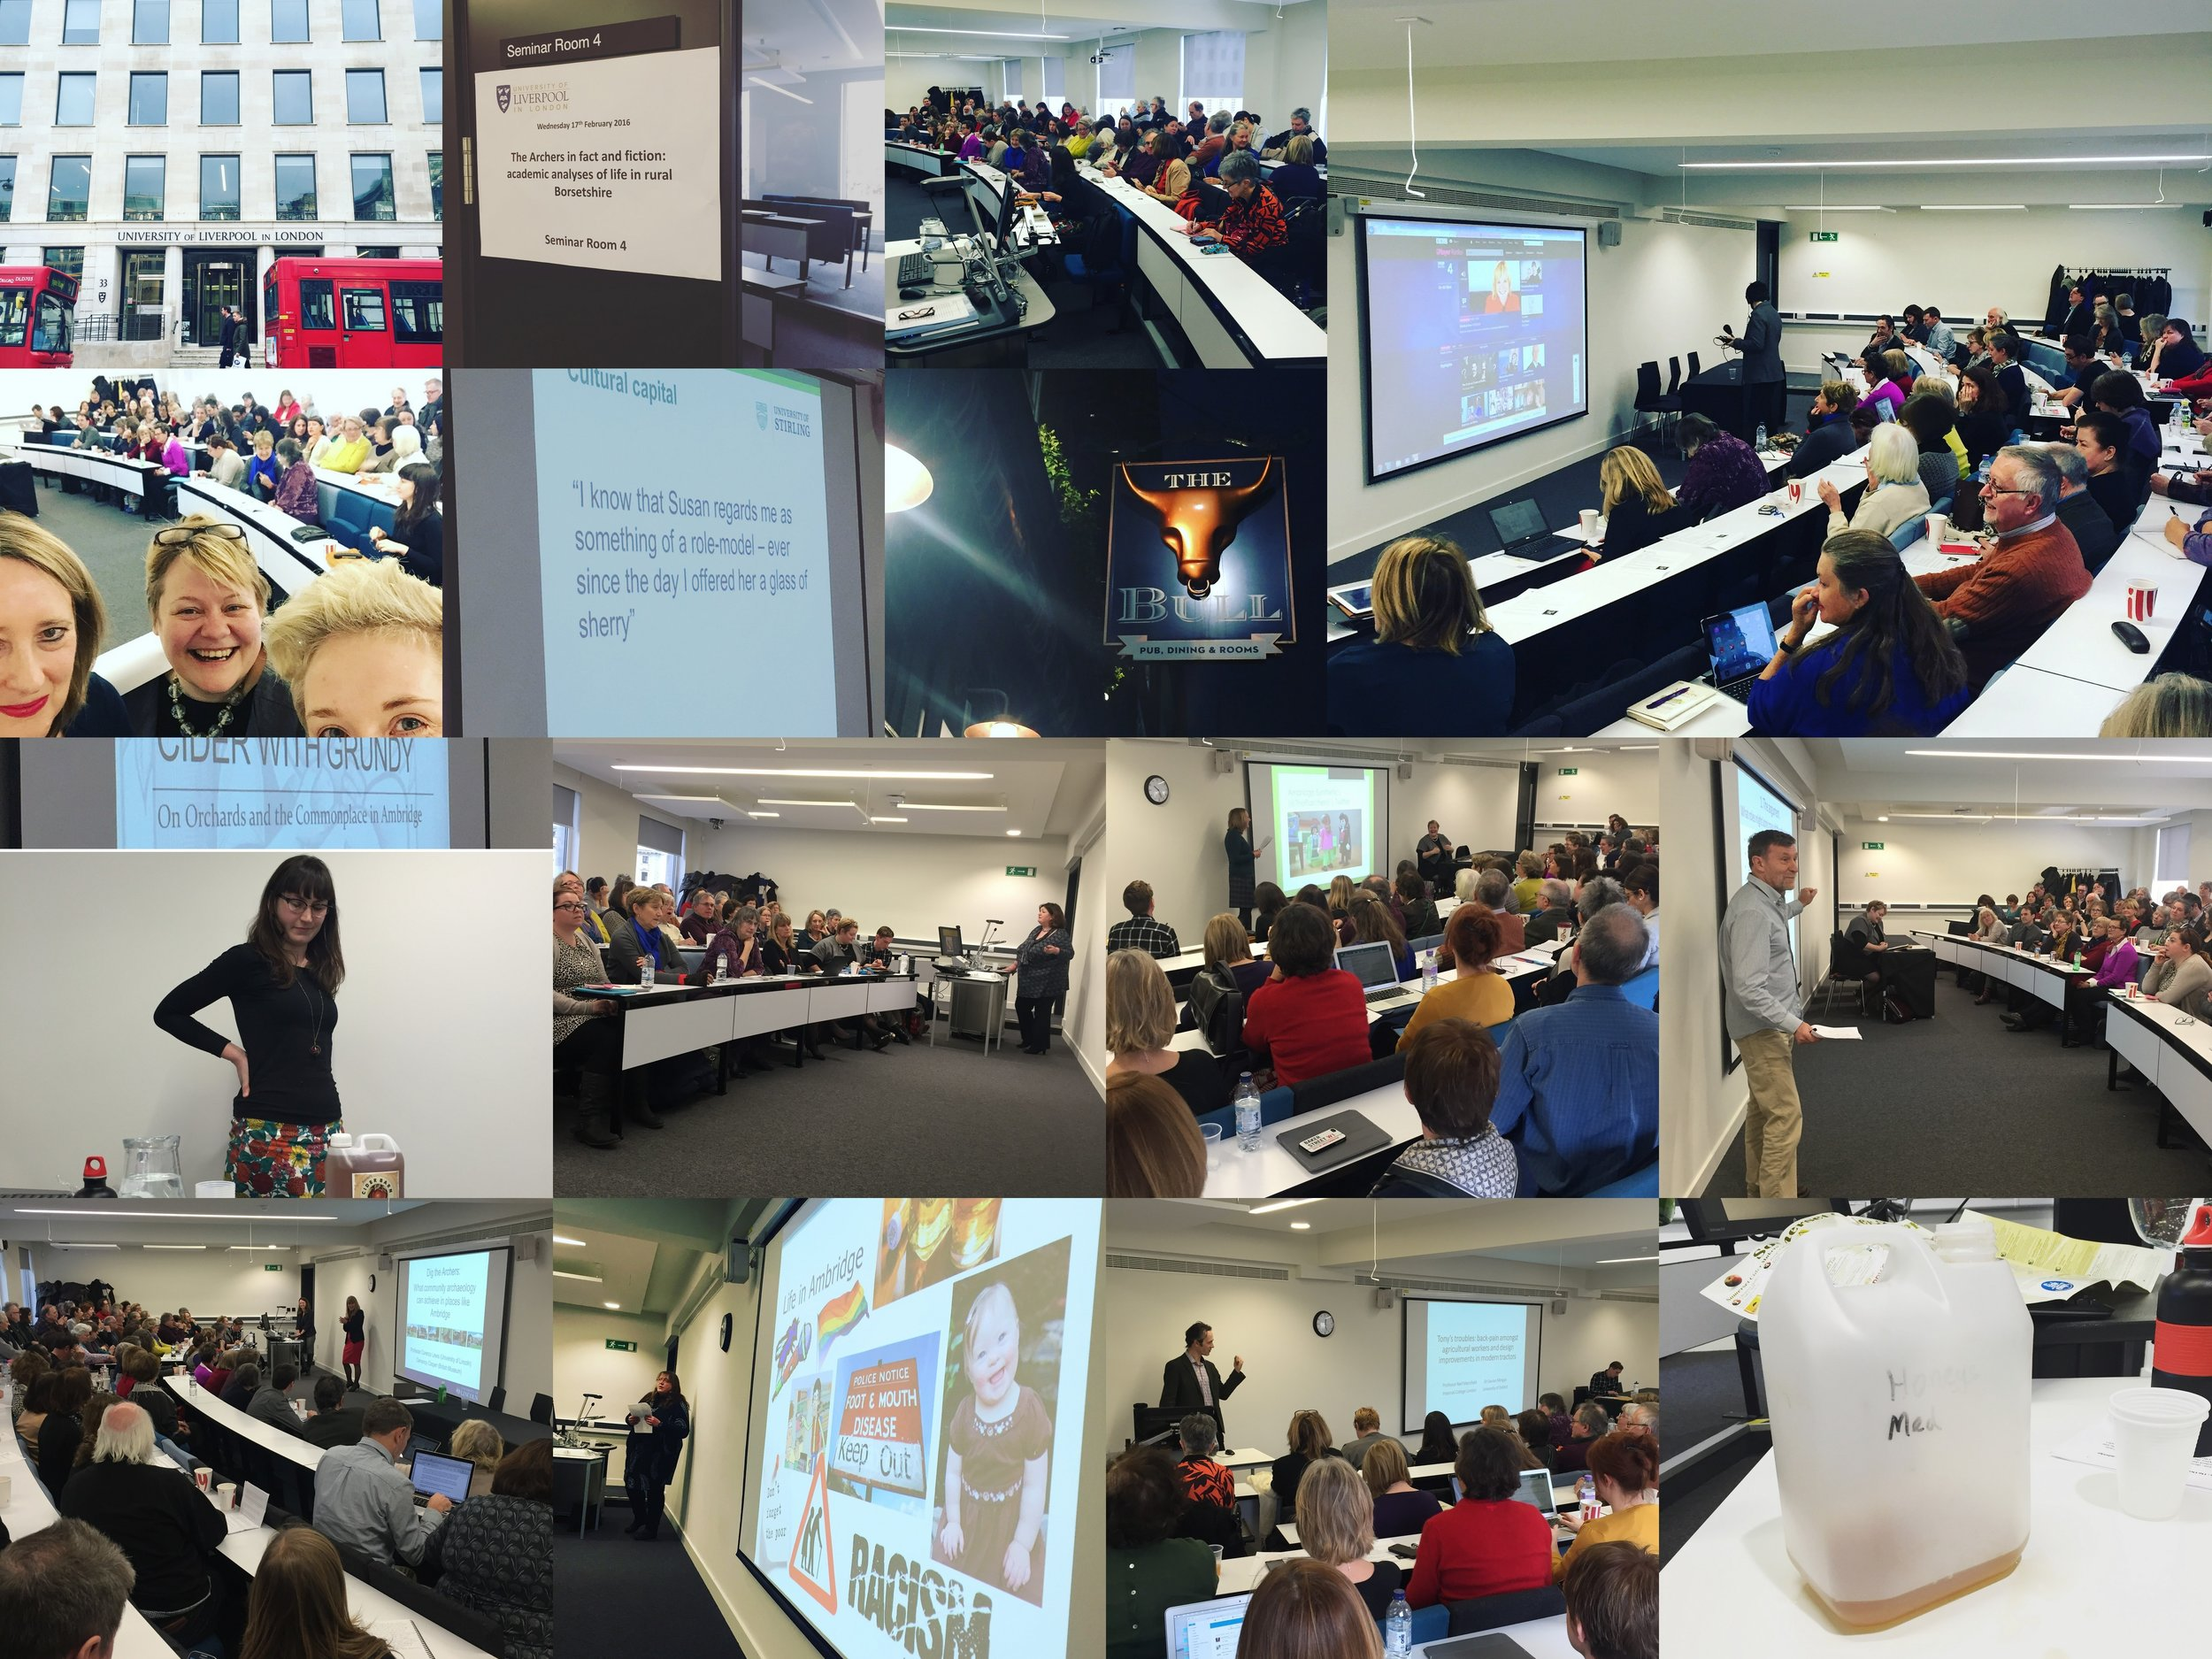 2016 conf images.jpg